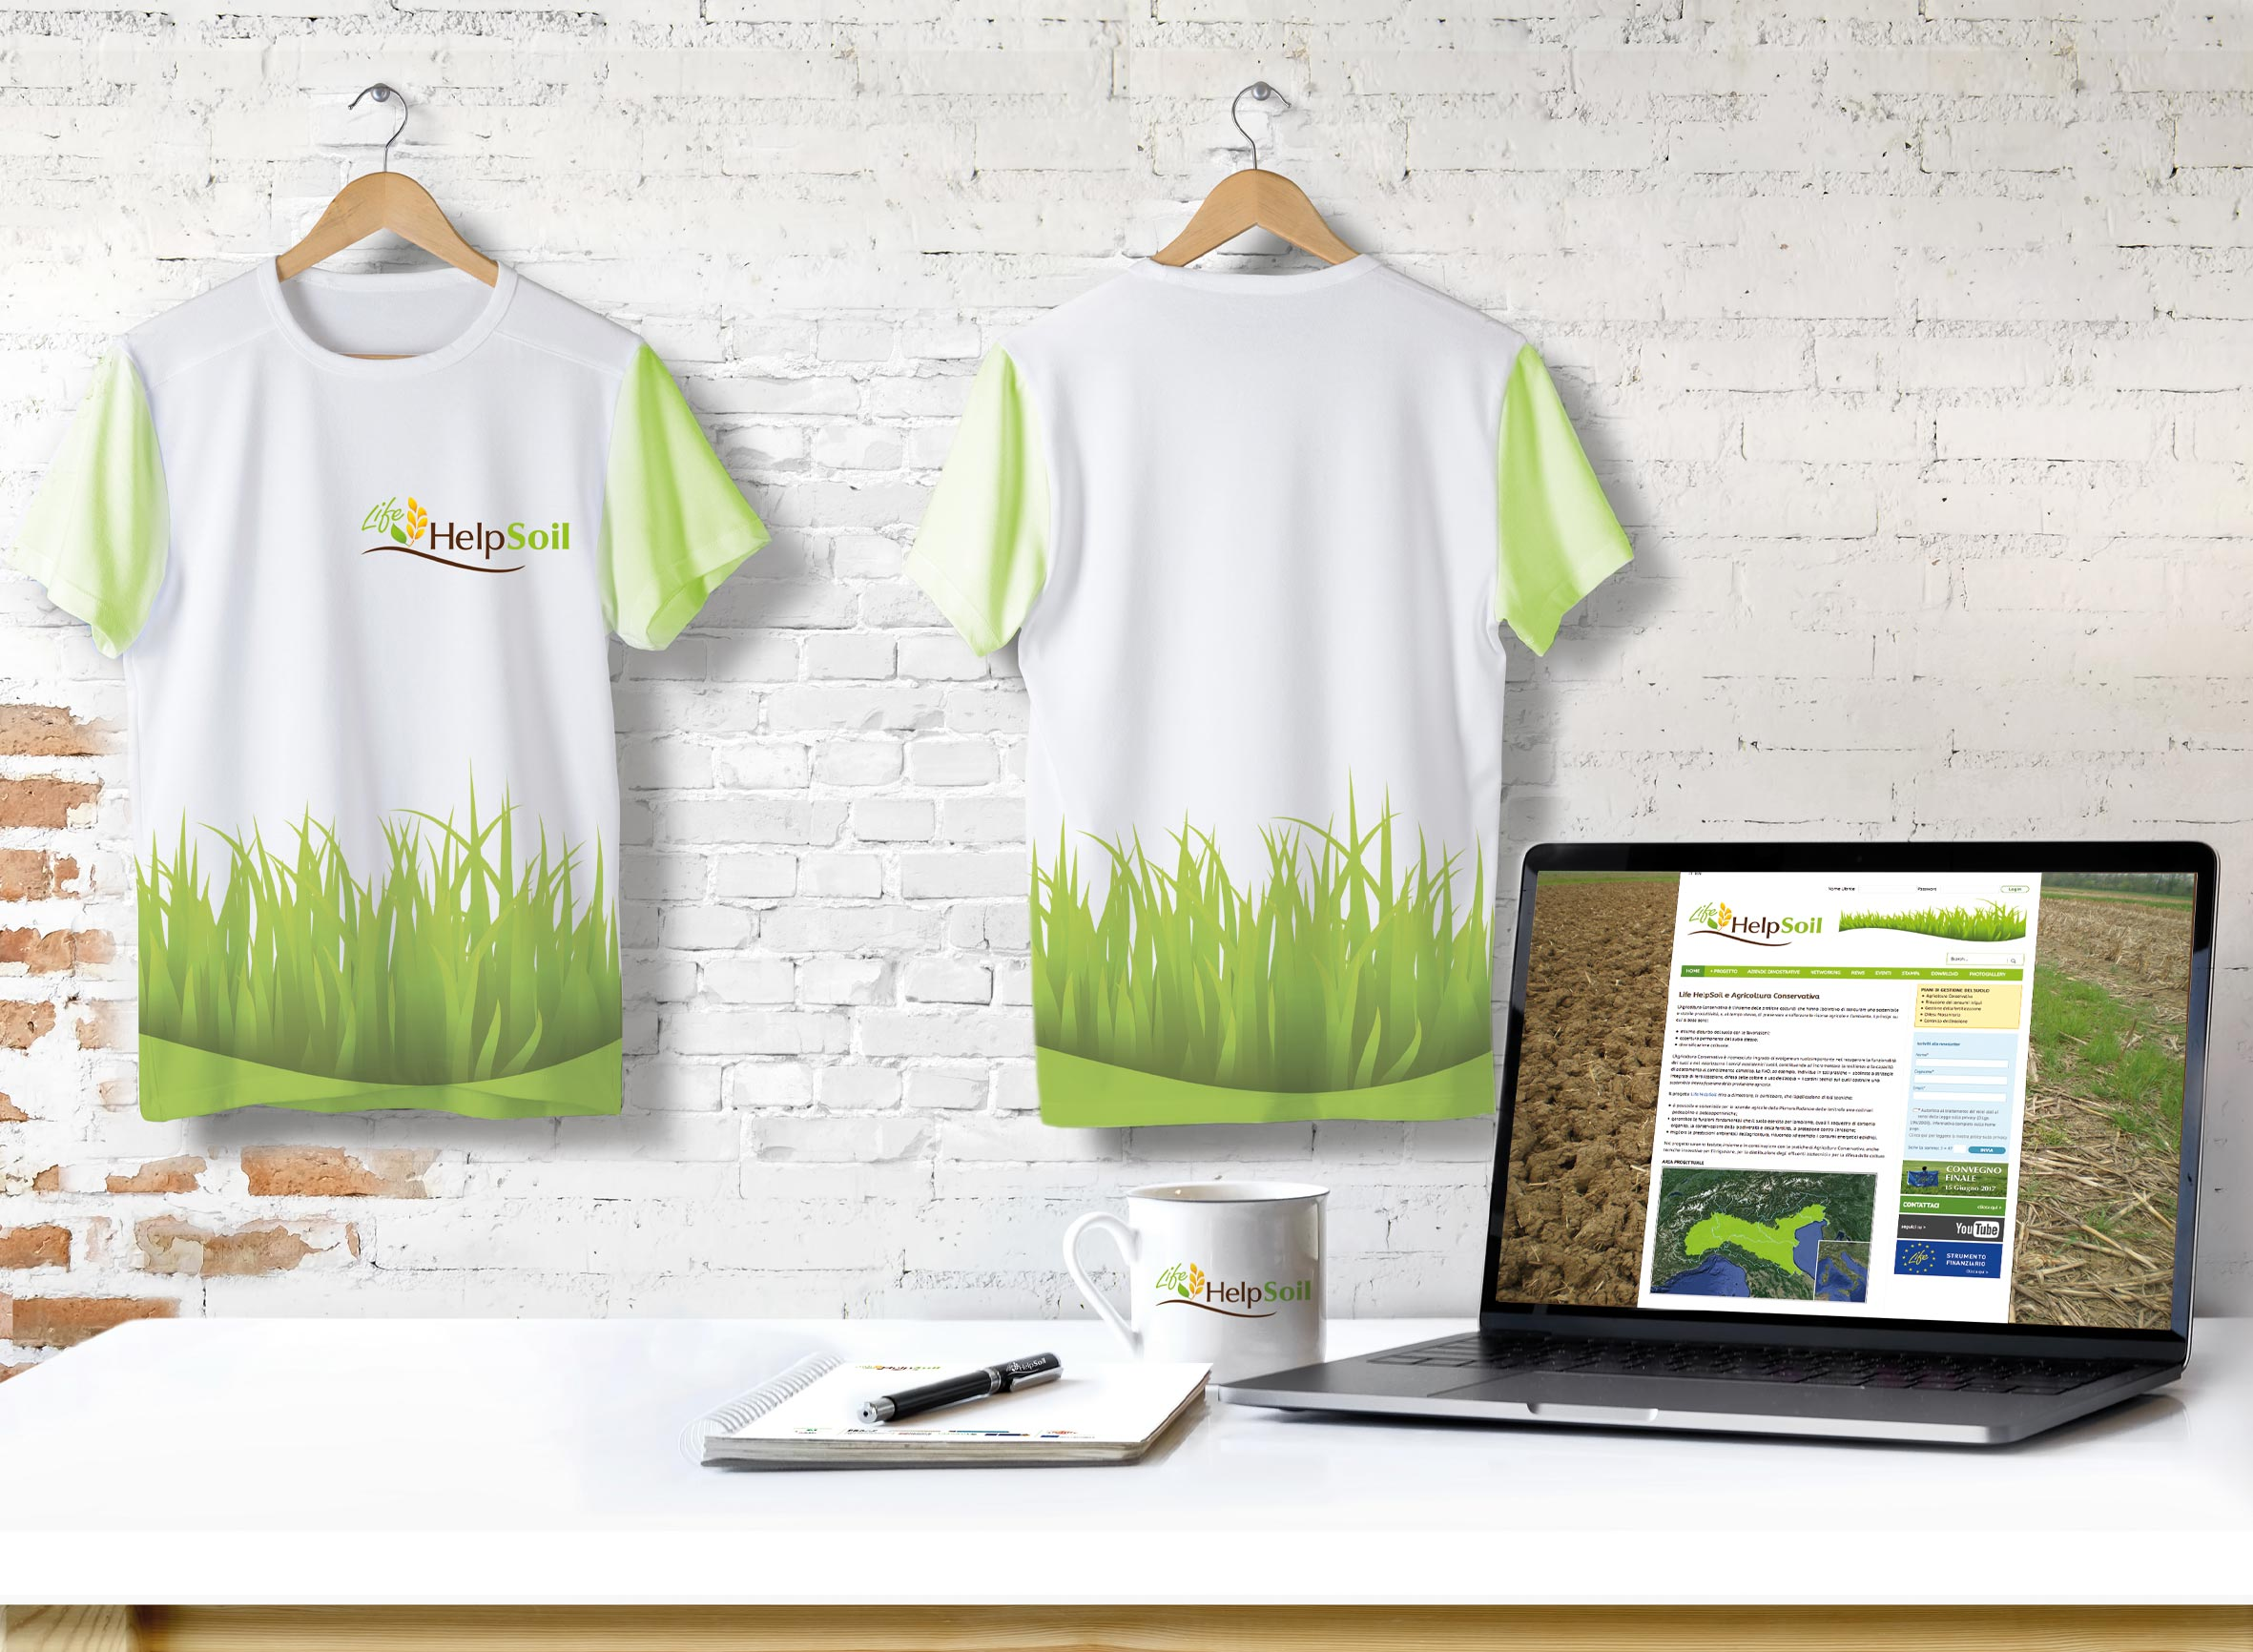 https://www.studiochiesa.it/wp-content/uploads/2020/06/SC-studio-chiesa-communication_agriculture_helpsoil03.jpg